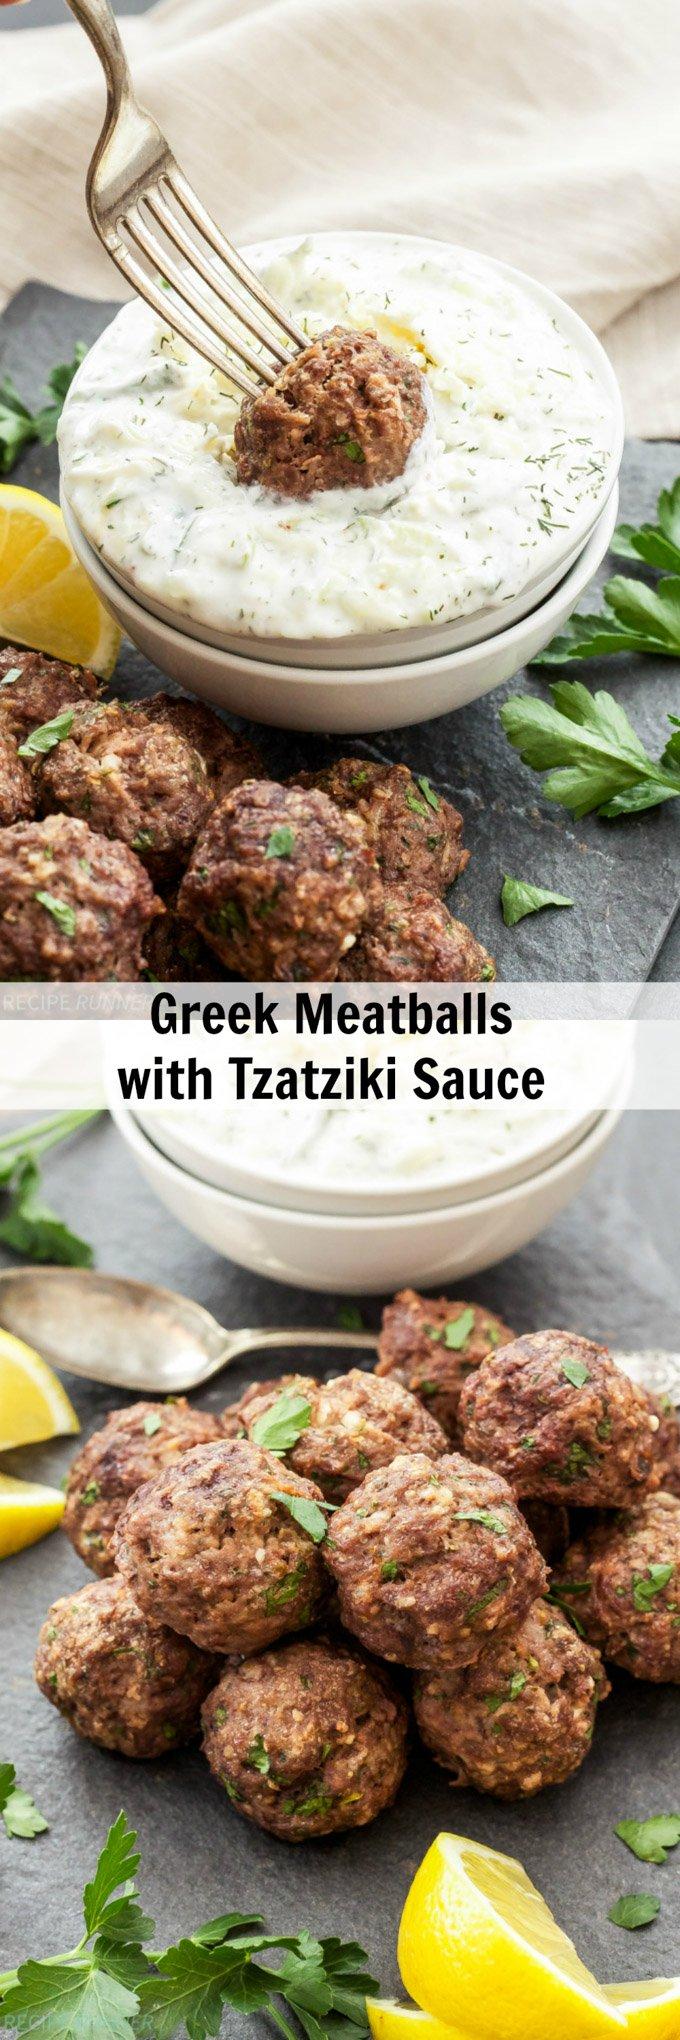 Greek Meatballs with Tzatziki Sauce | Meatballs loaded with spices, lemon zest and feta cheese! They're sure to please anyone who loves Greek flavors! #greek #meatballs #tzatziki #dinner #appetizer